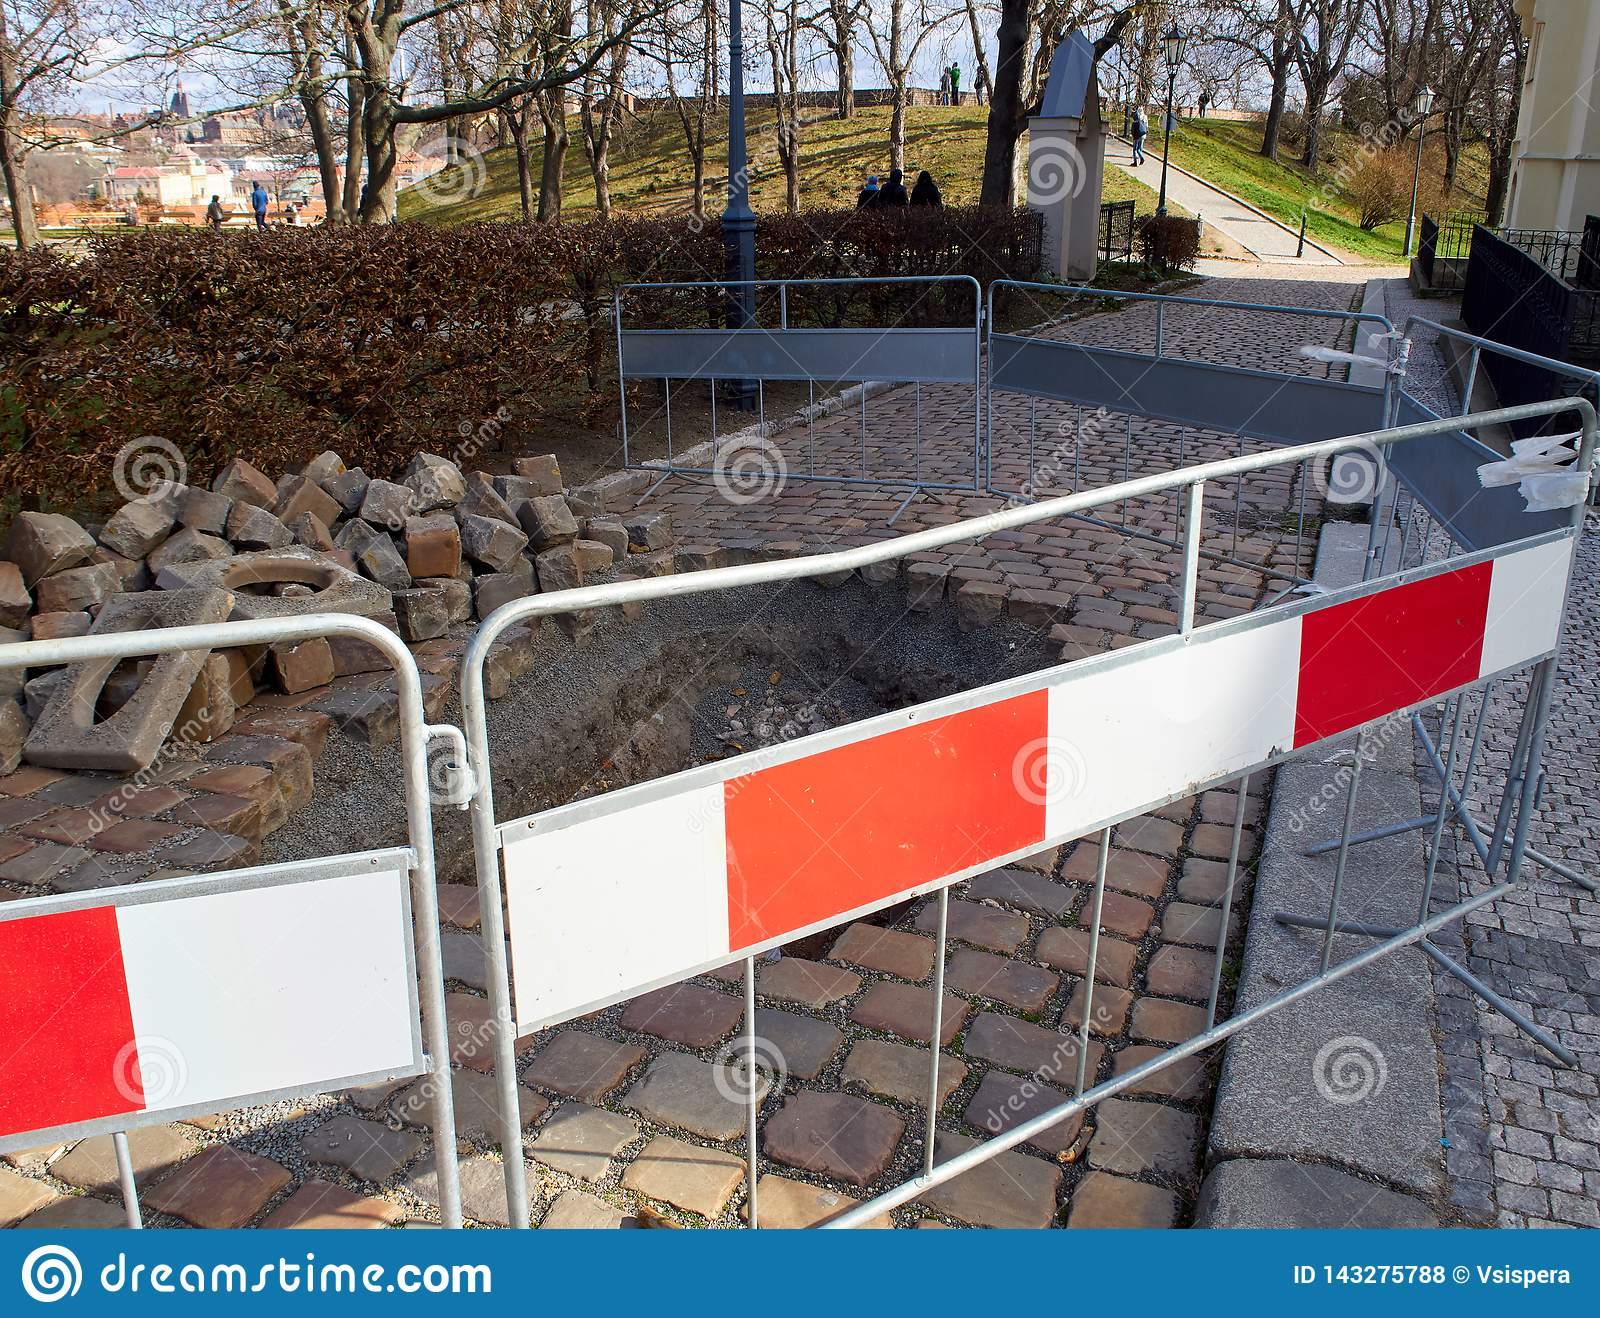 Dugged walkway and hole in the pavement. The protection block. Park with trees